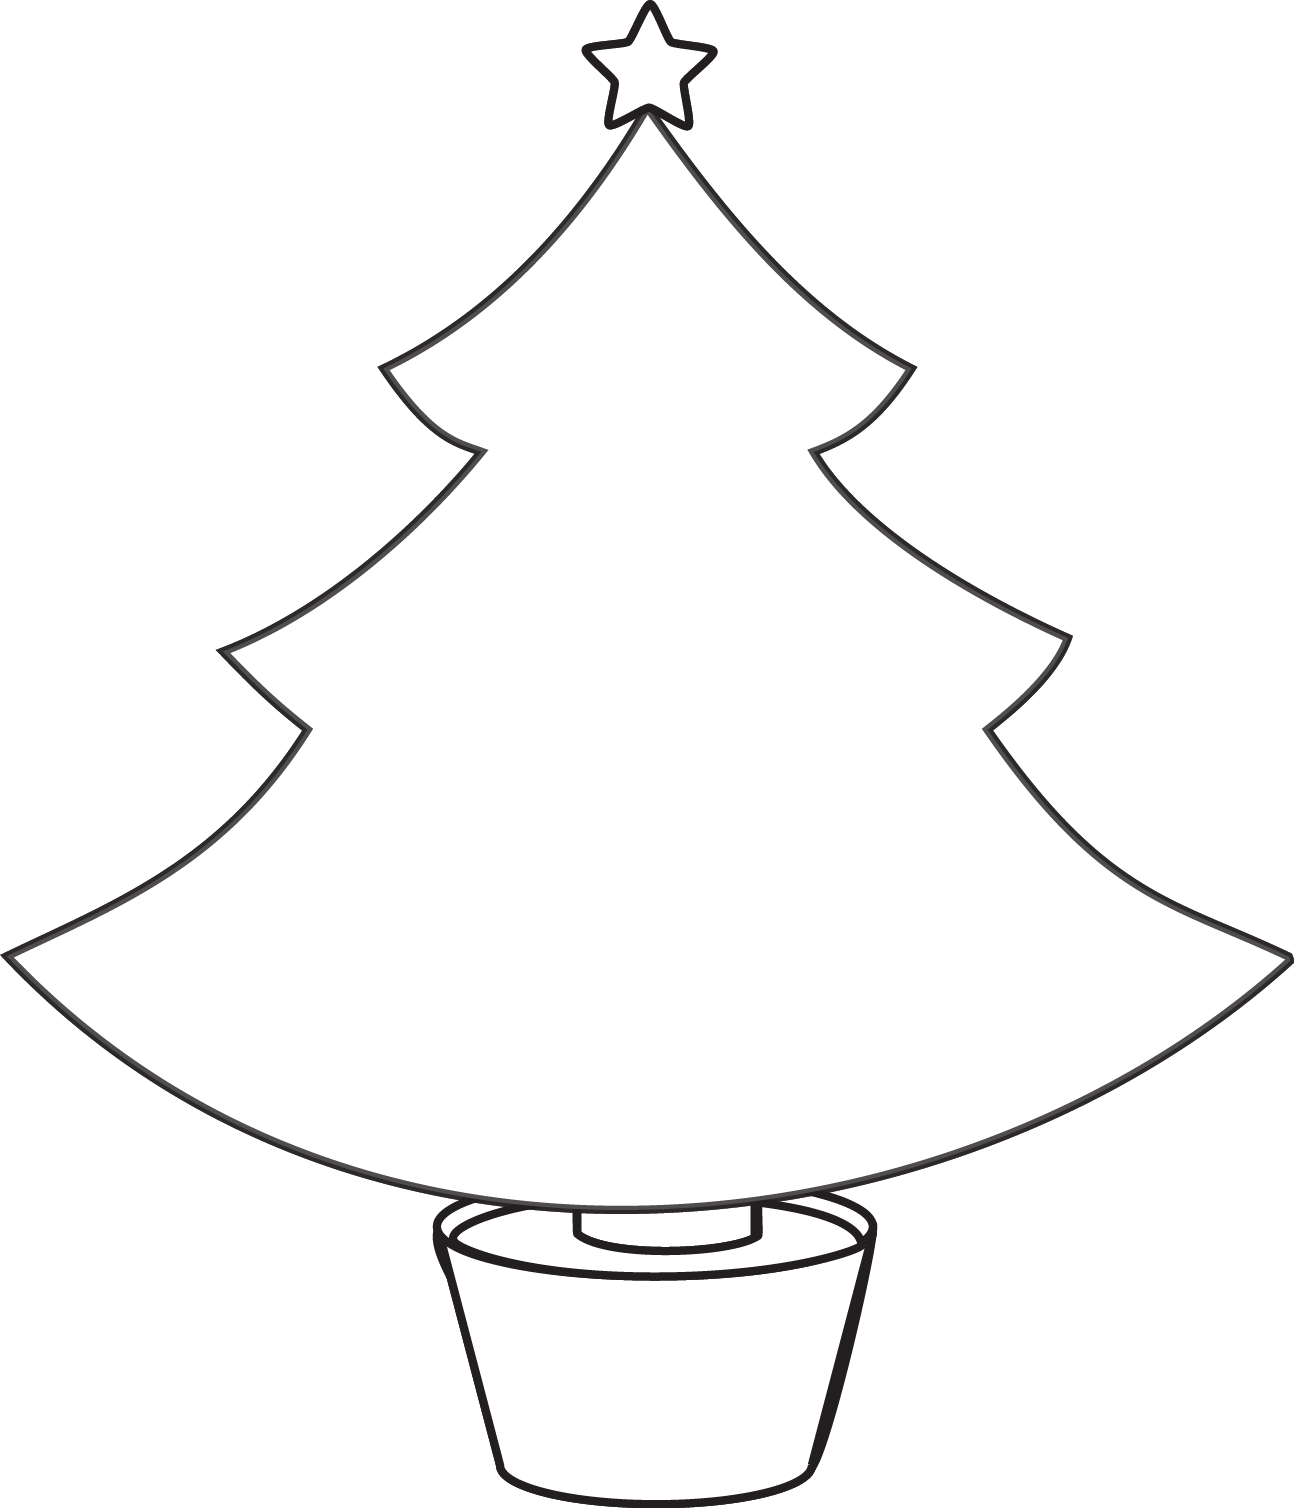 12 Days Of Free Christmas Printables Christmas Tree Template Christmas Tree Printable Christmas Tree Clipart